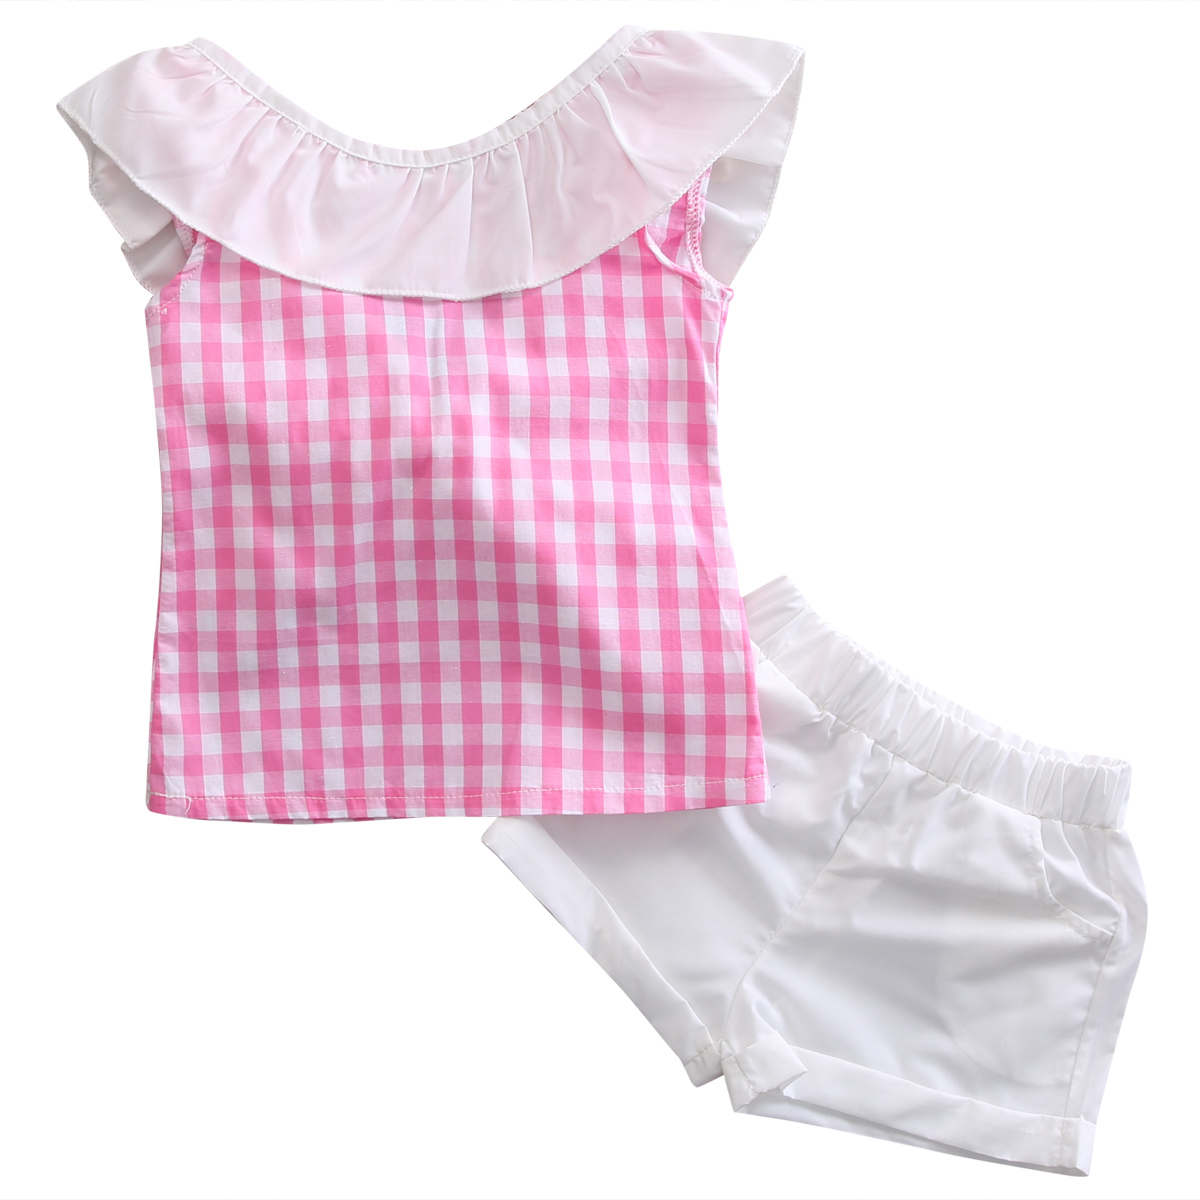 2PCS Toddler Kids Baby Girl Clothes 2017 Summer Sleeveless Plaid Shirt Ruffles Back Bow Tops +Shorts Pant Children Clothing Set 0 24m floral baby girl clothes set 2017 summer sleeveless ruffles crop tops baby bloomers shorts 2pcs outfits children sunsuit